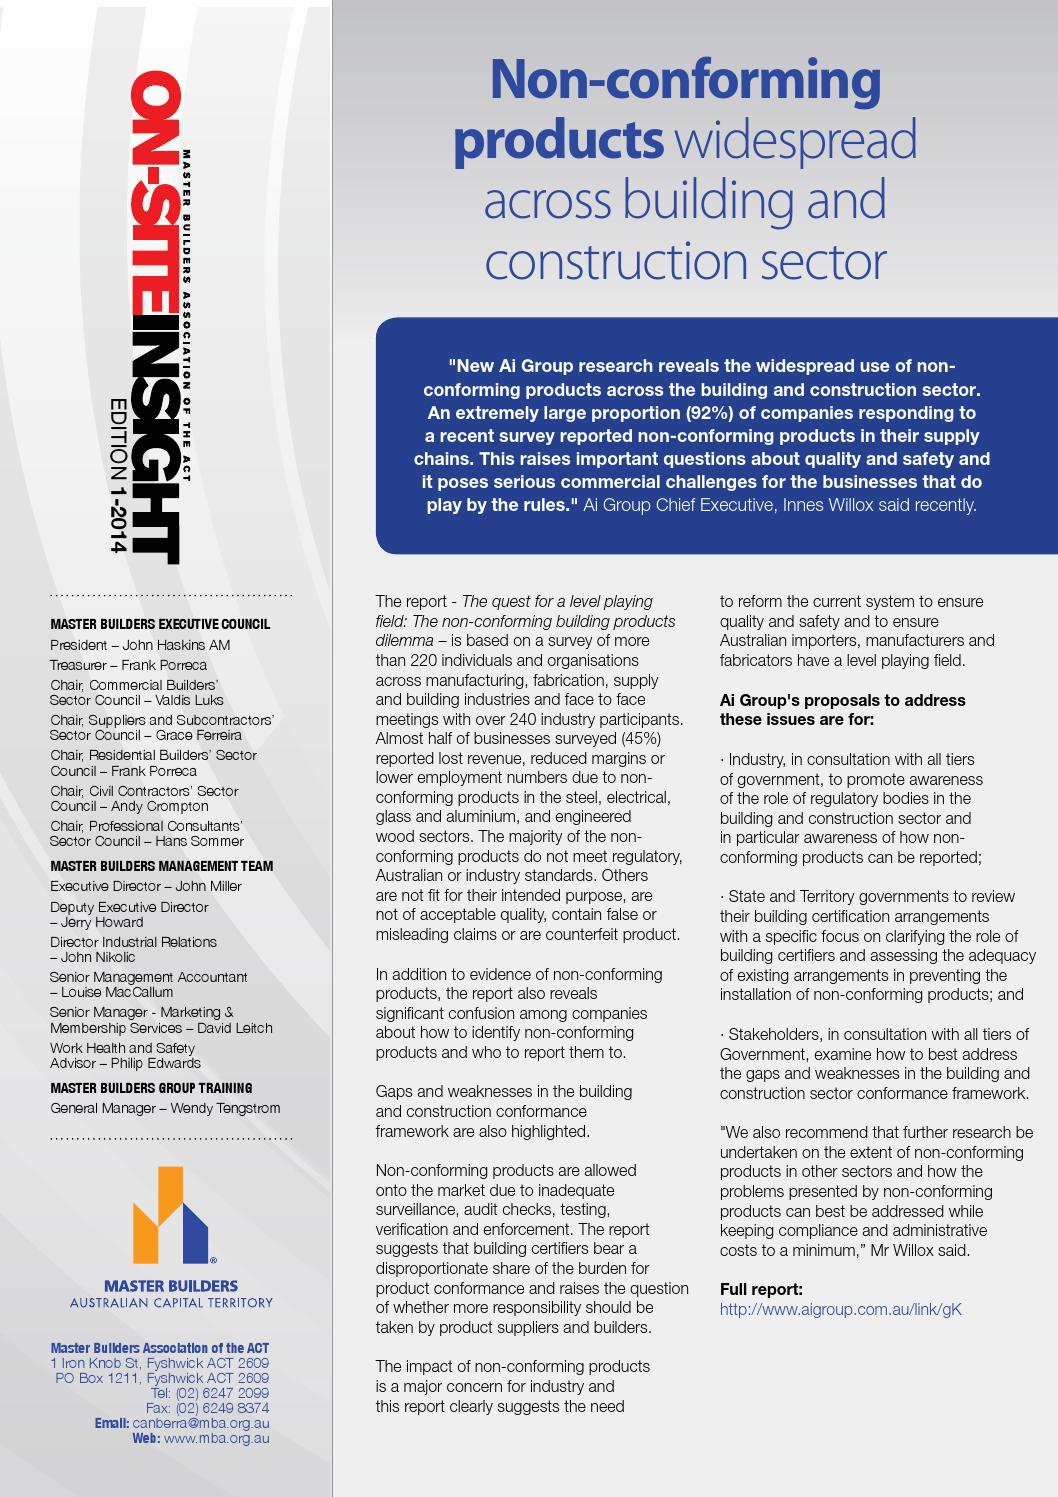 Onsite insight edition 1 2014 online by Master Builders